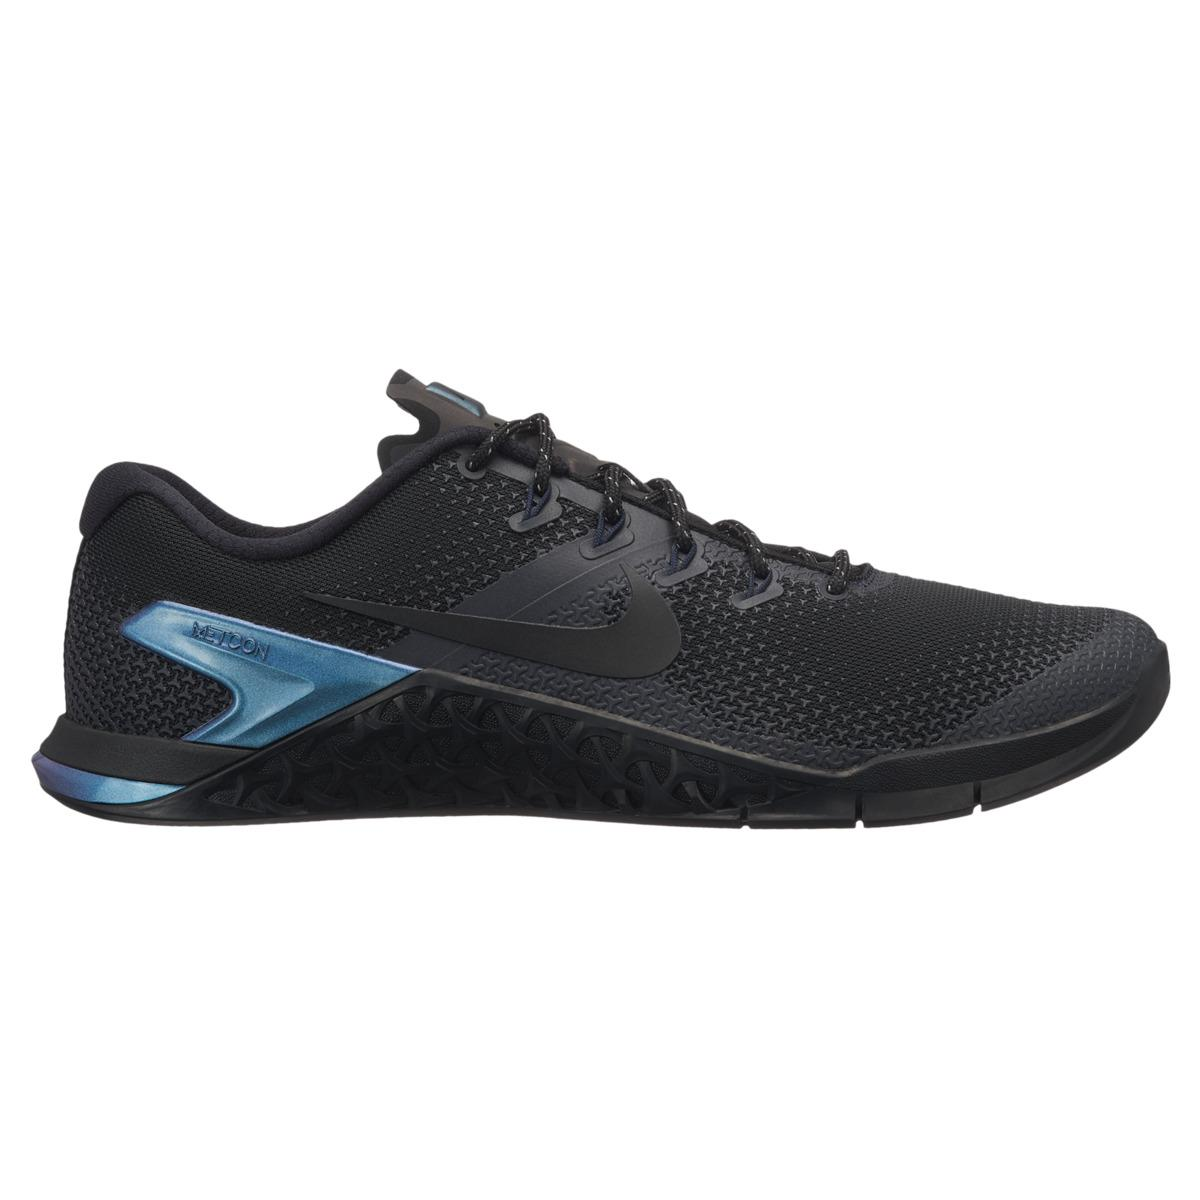 228c54a22bb0a5 Lyst - Nike Metcon 4 Amp Premium Training Shoes in Black for Men